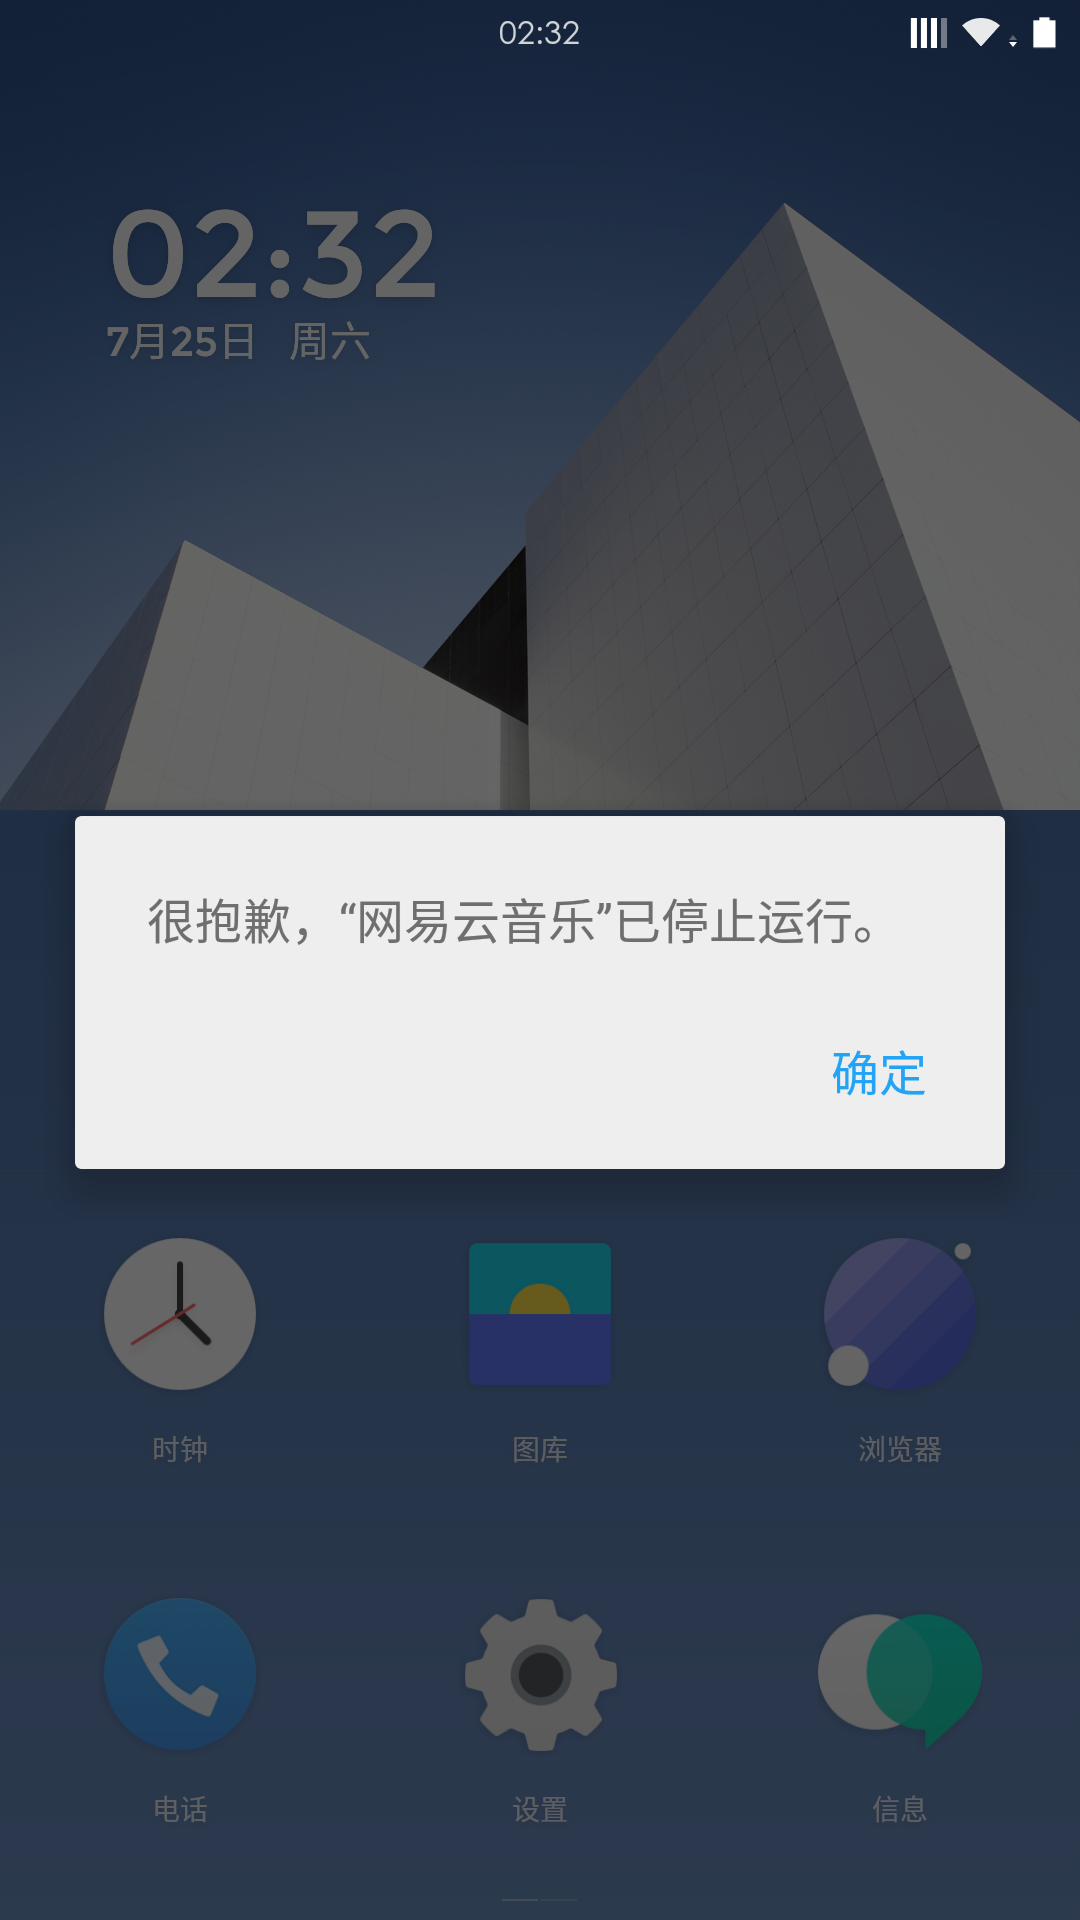 Screenshot_2015-07-25-02-32-30.png